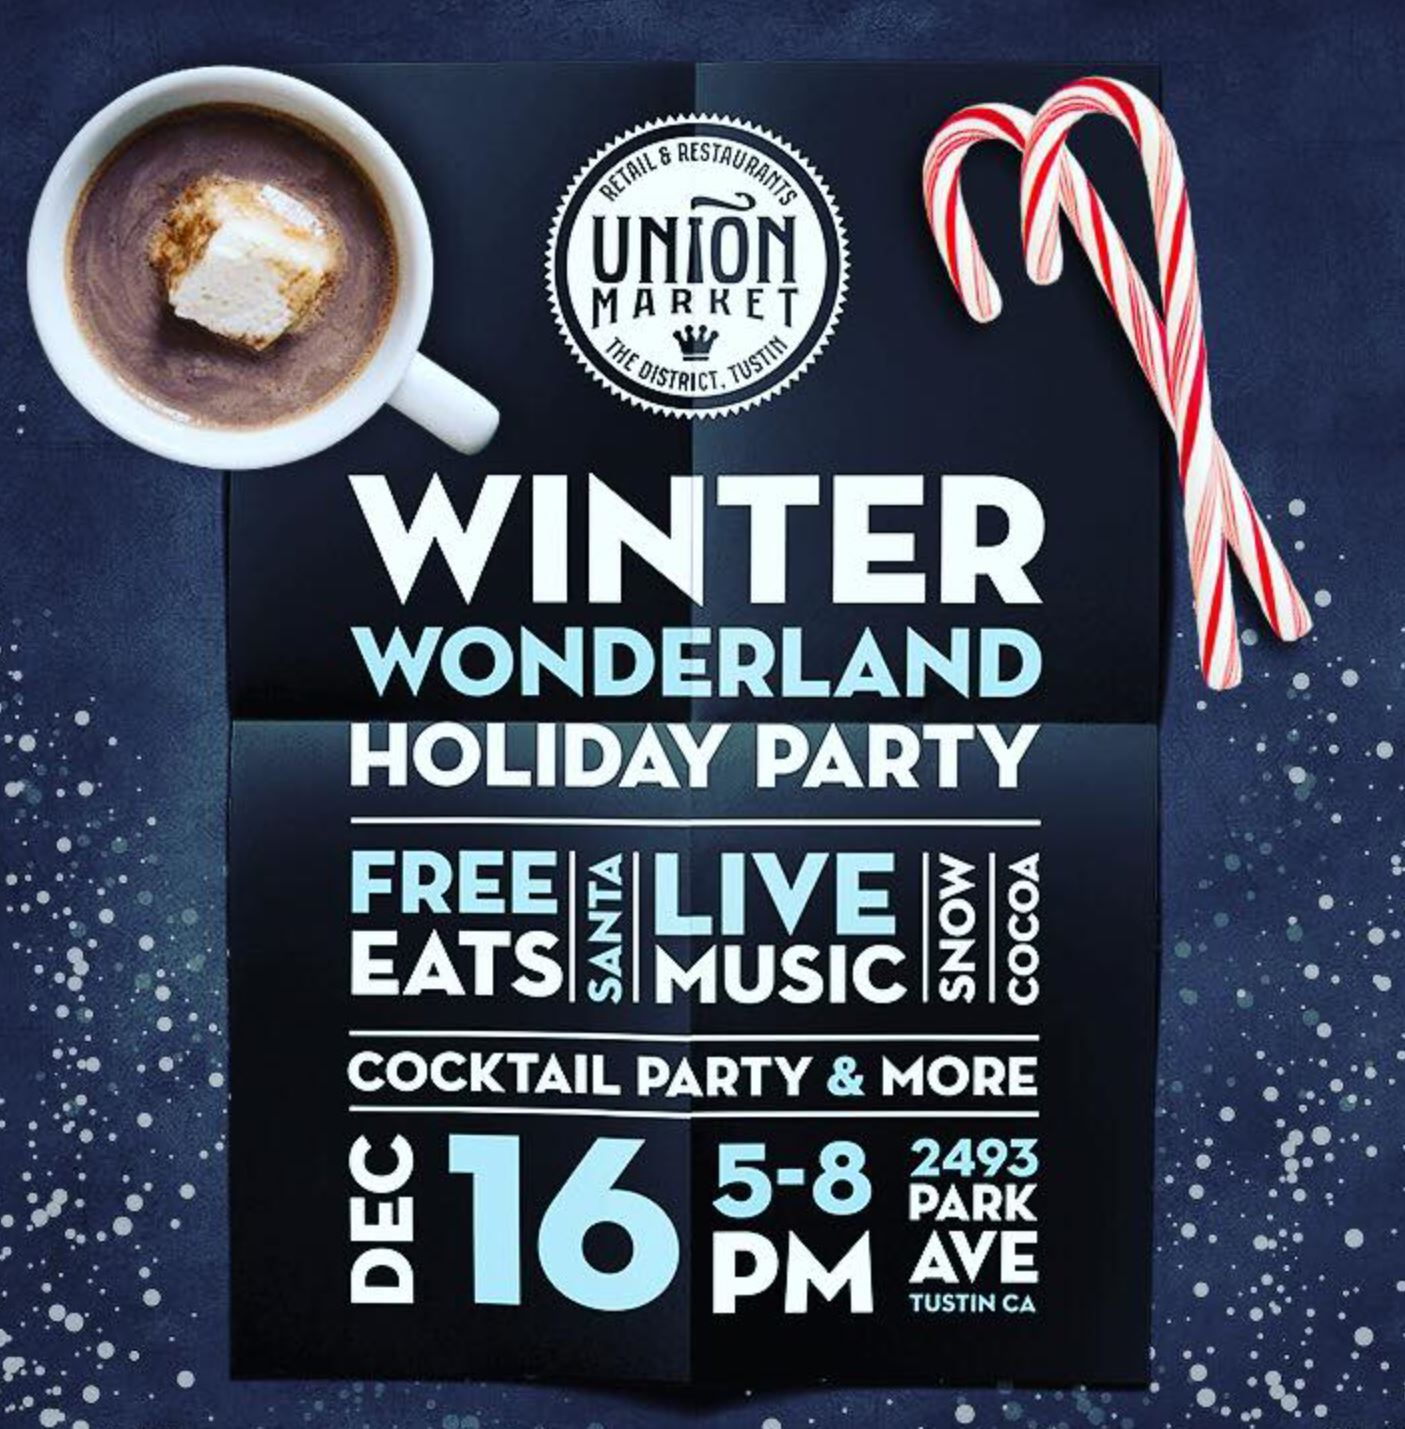 Dec. 16 | The Union Market Tustin Hosts Winter Wonderland with Santa, Snow, Free Samples, & Giveaways!